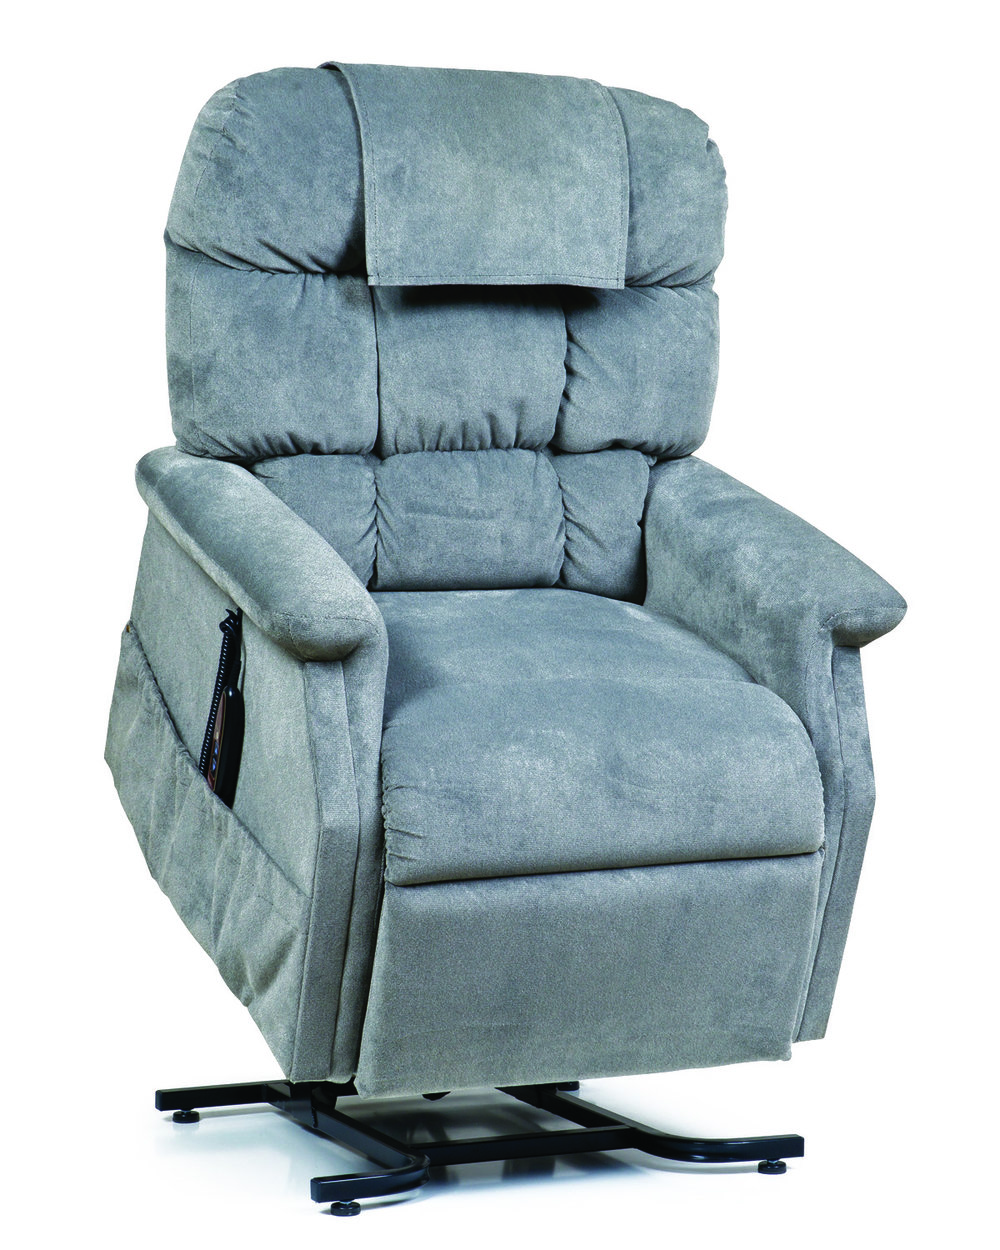 gray_lift-chair.jpg